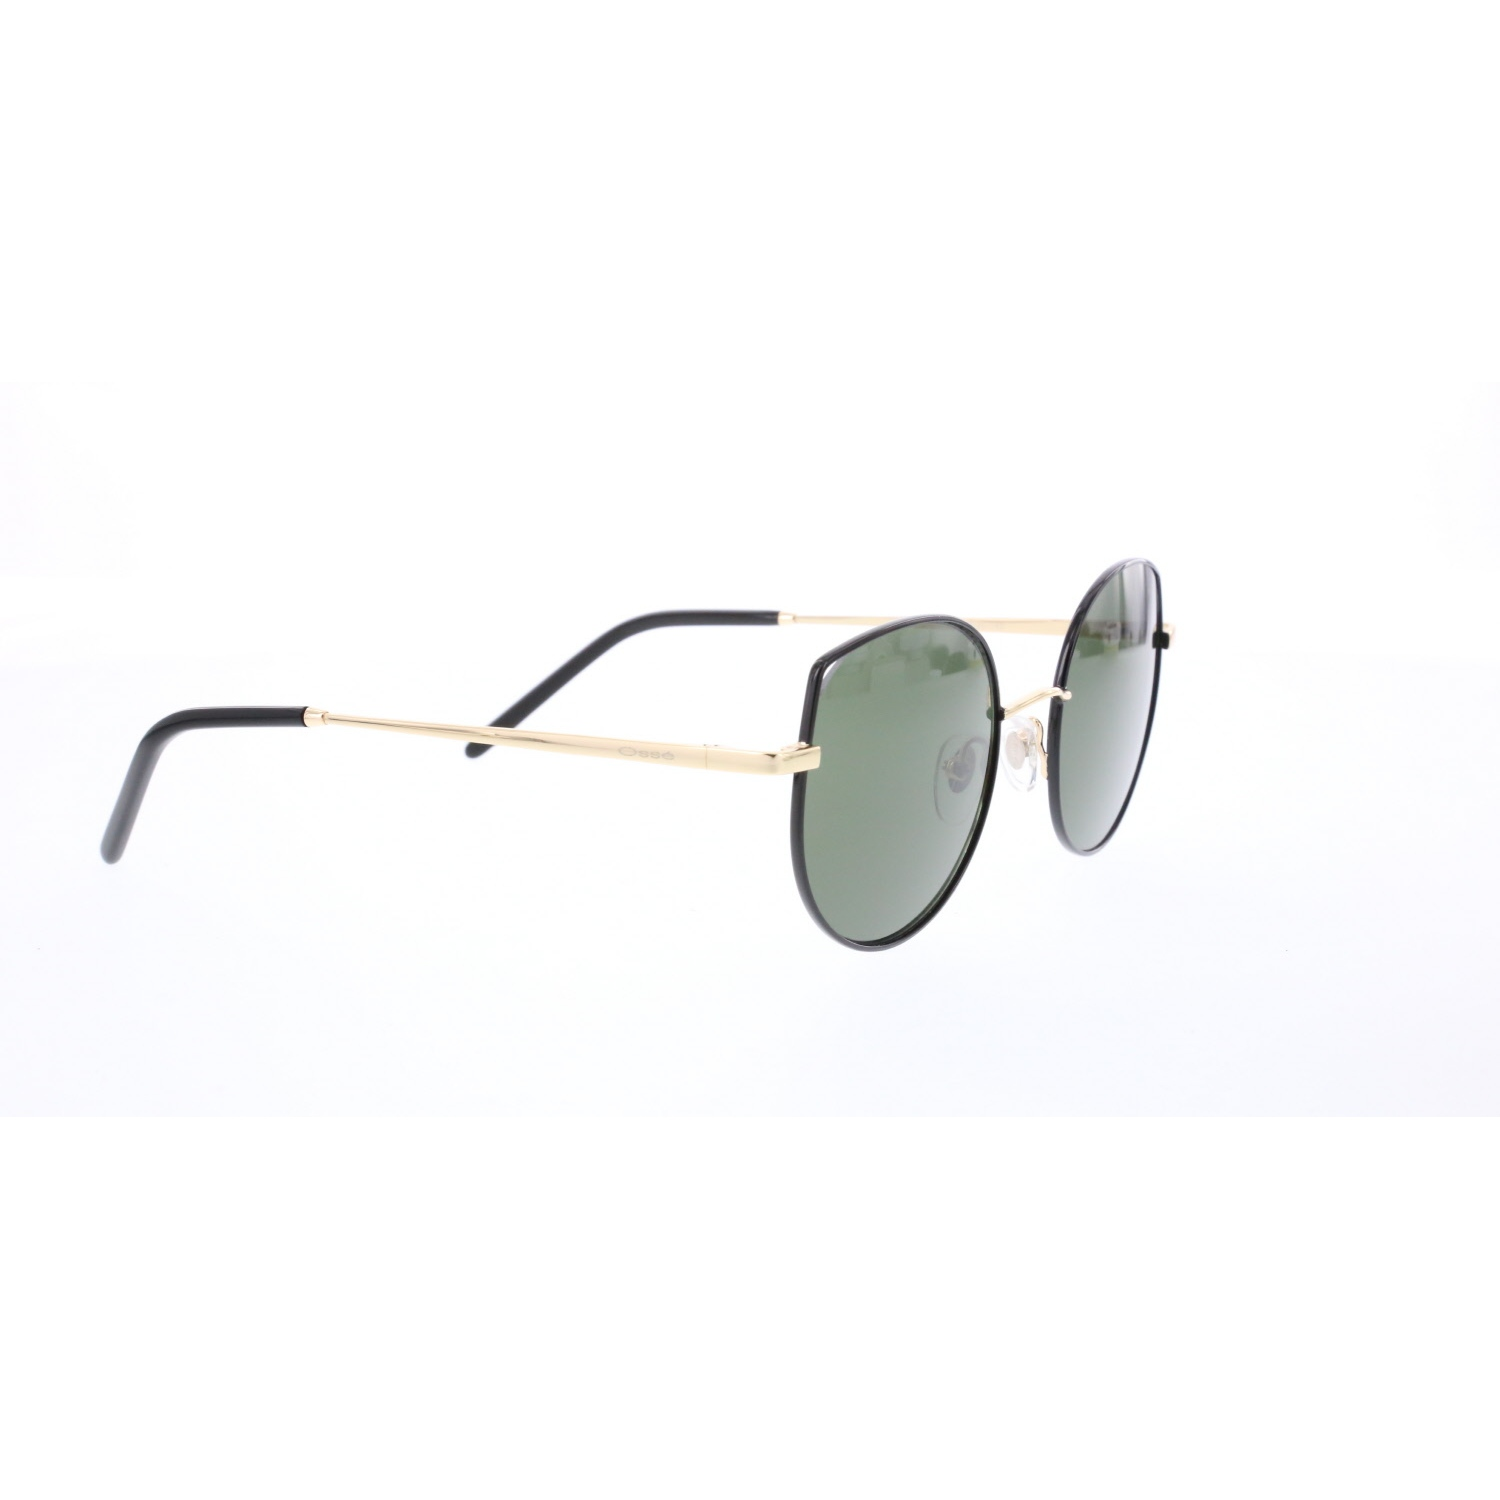 Women's sunglasses os 2861 02 metal black organic oval aval 51-20-140 osse